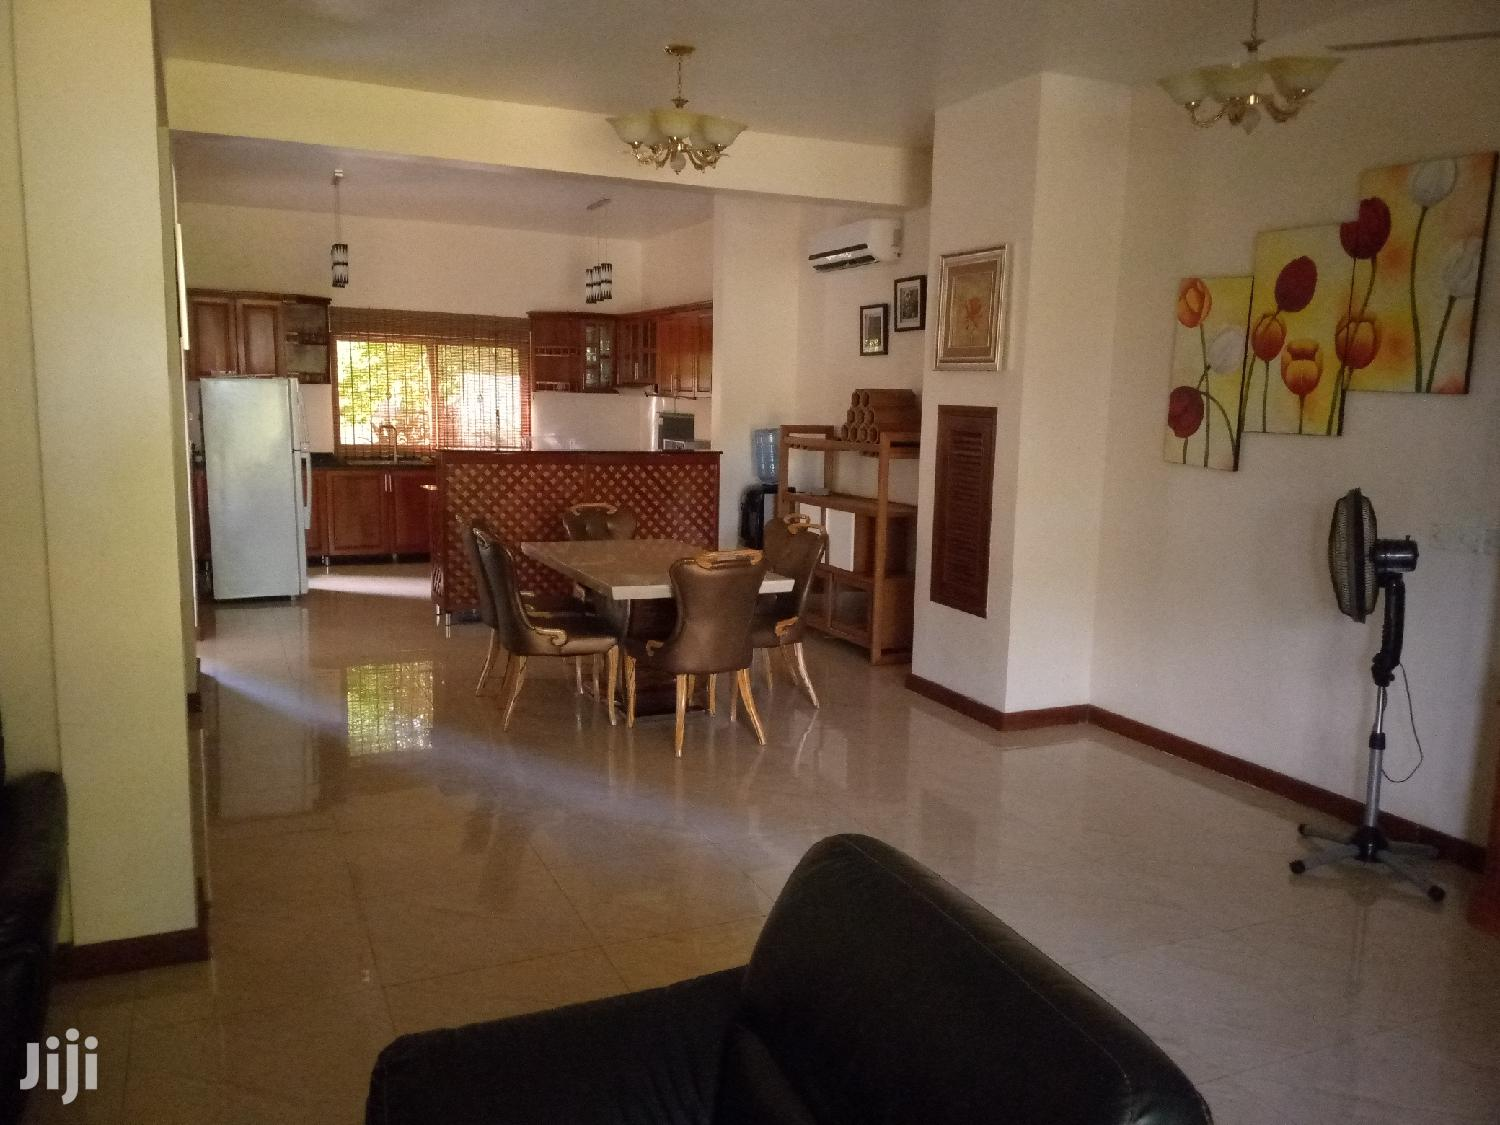 3 Bedroom Villa At Mbezi Beach For Rent | Houses & Apartments For Rent for sale in Kinondoni, Dar es Salaam, Tanzania